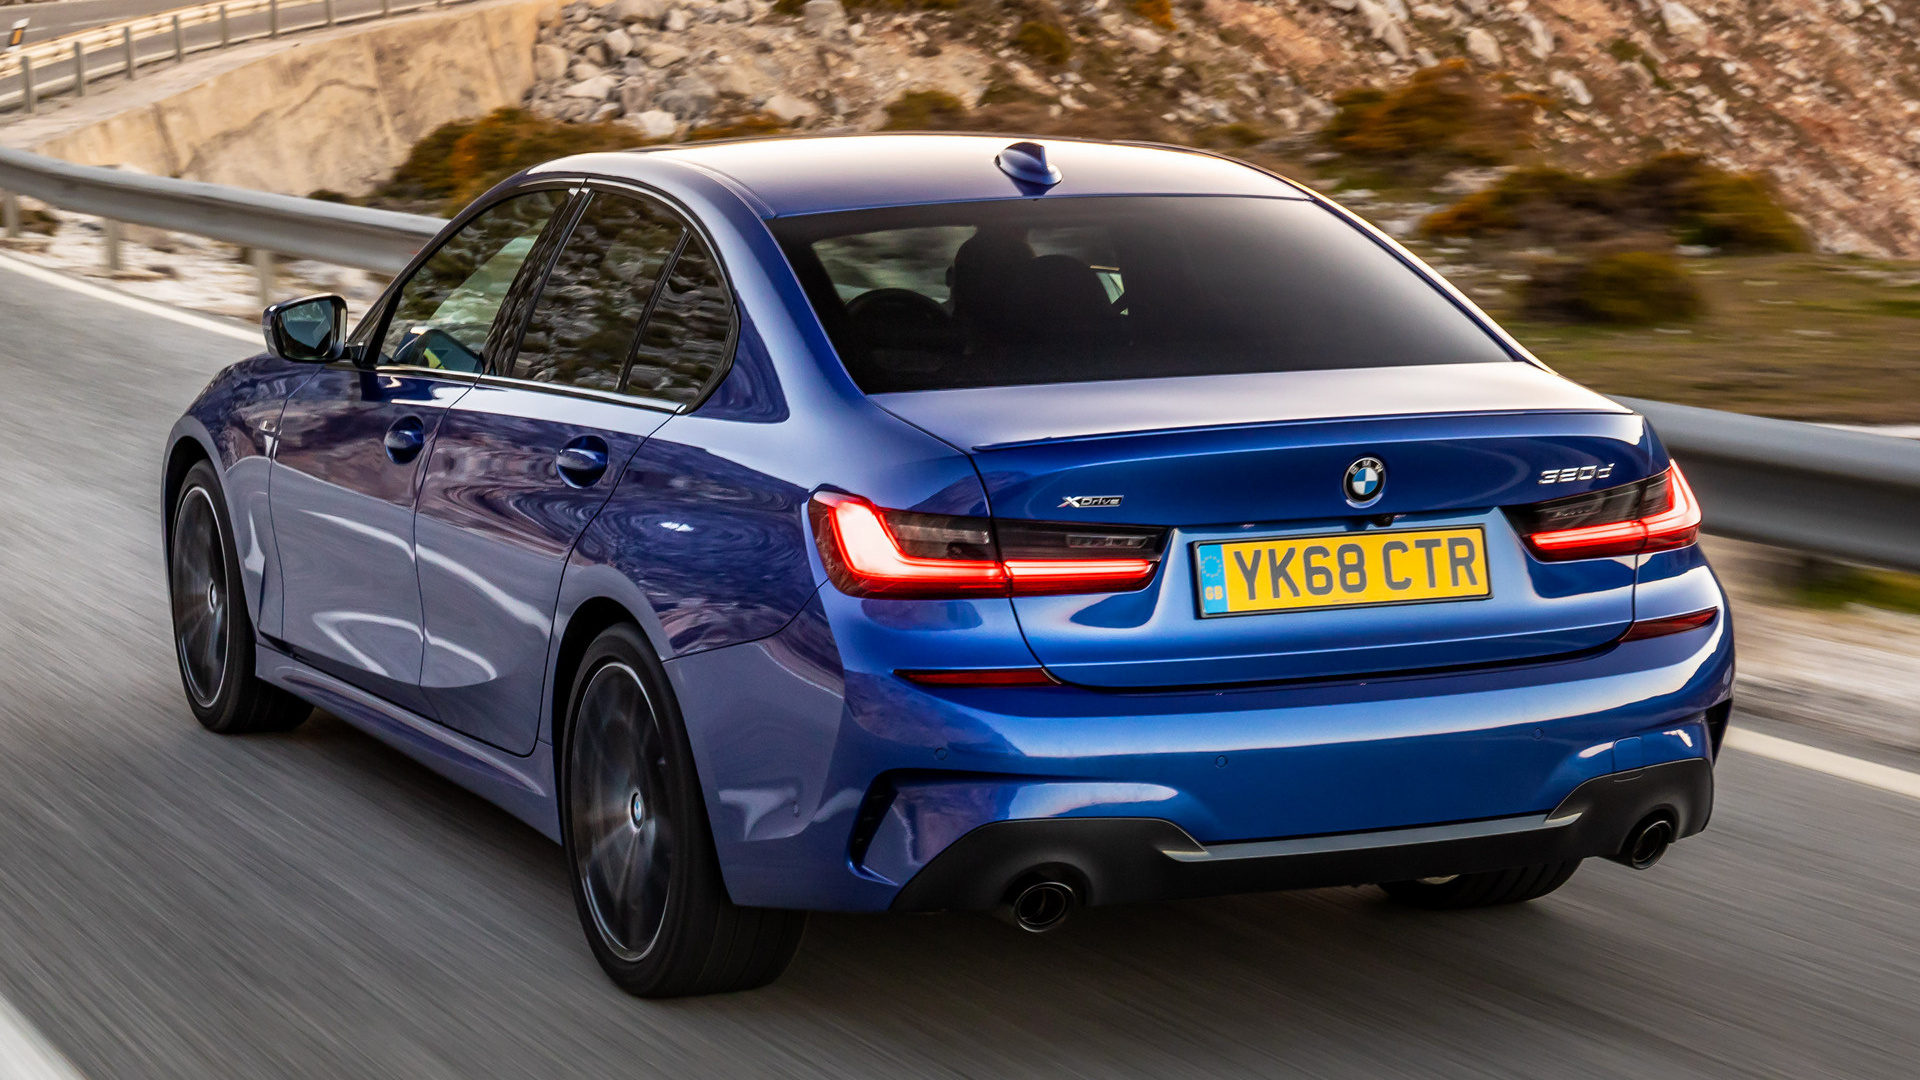 Bmw M Series >> 2019 BMW 3 Series M Sport Shadow Line (UK) - Wallpapers ...